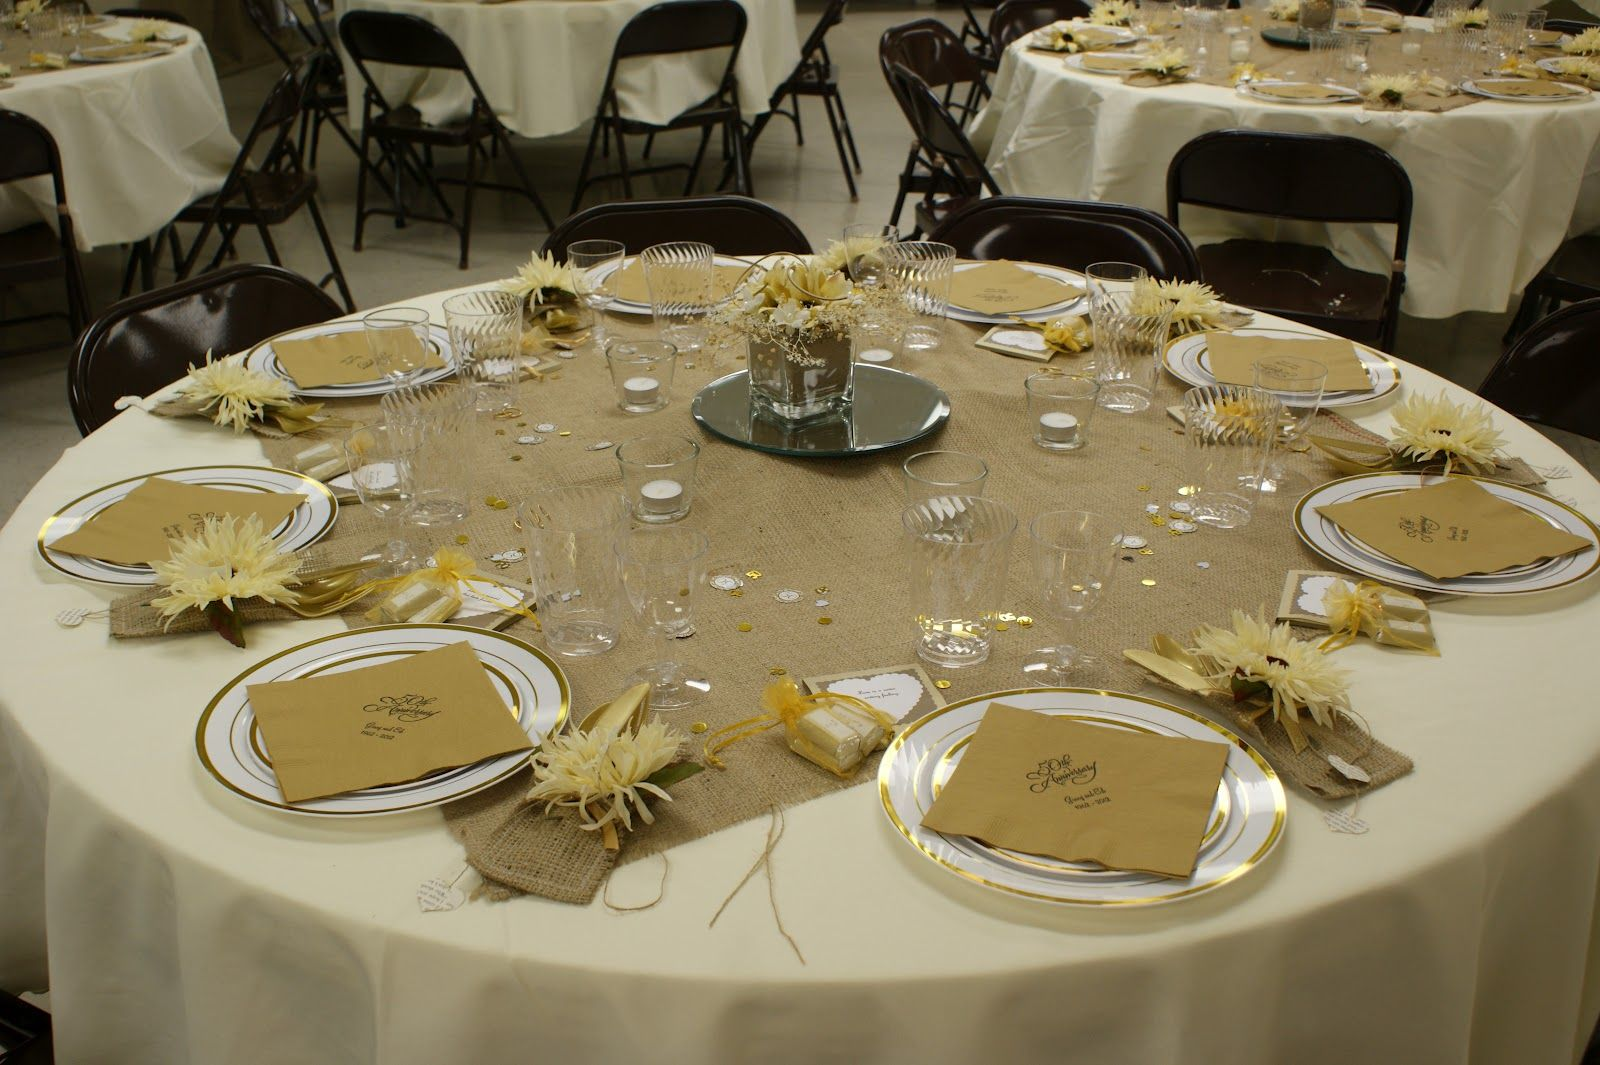 Table Centrepiece Ideas in 2020 50th wedding anniversary